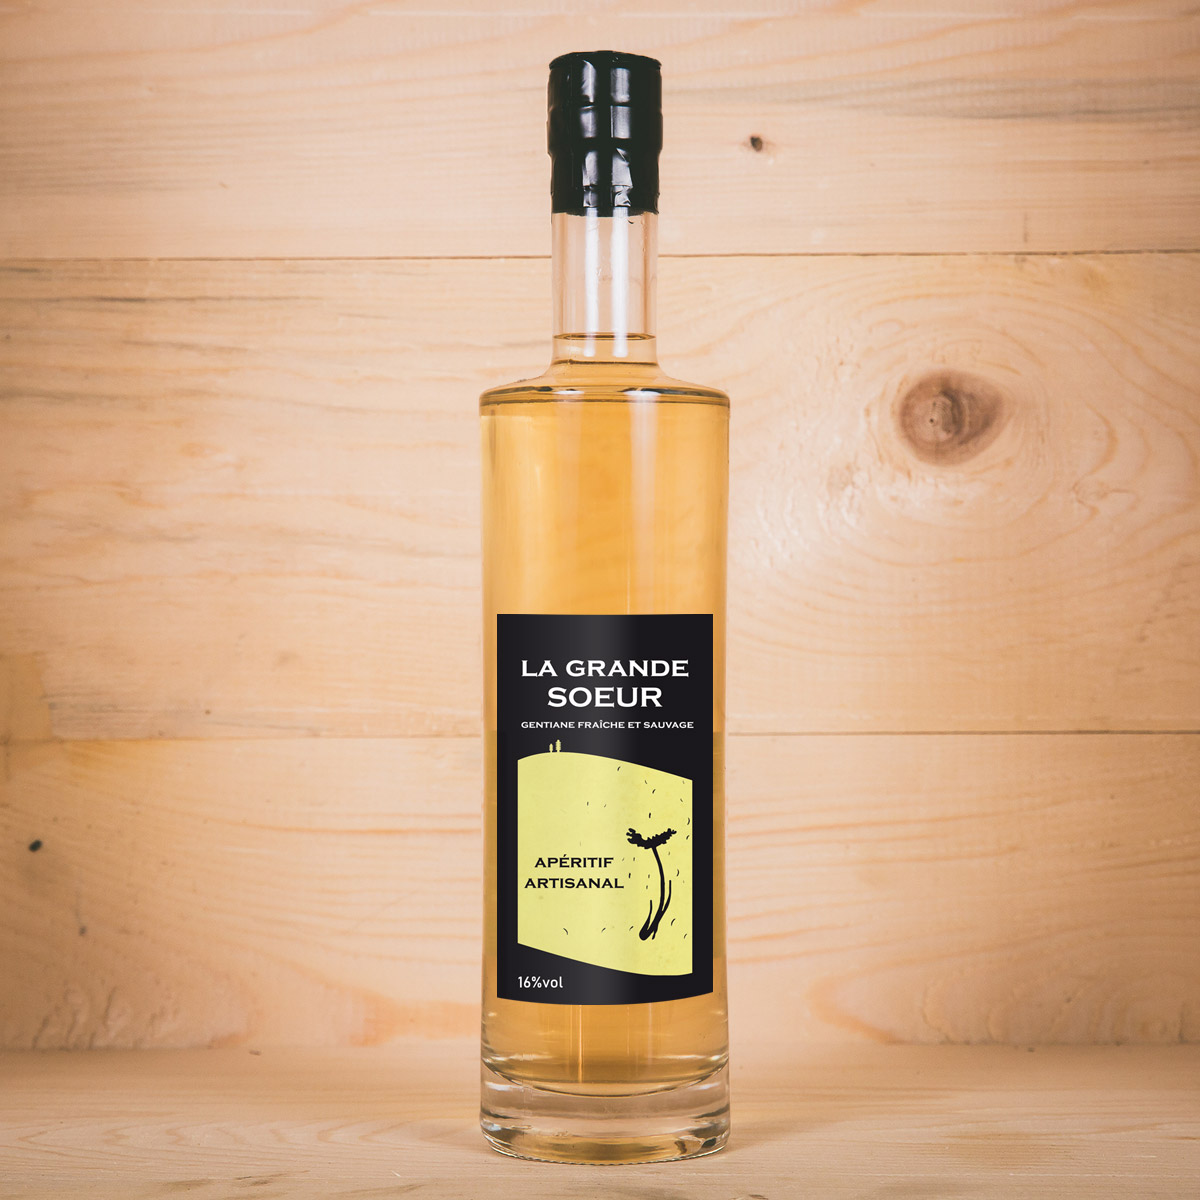 https://www.lasource-distillerie.fr/wp-content/uploads/2019/05/bouteille-grande-soeur-la-source-distillerie-600x600px.jpg